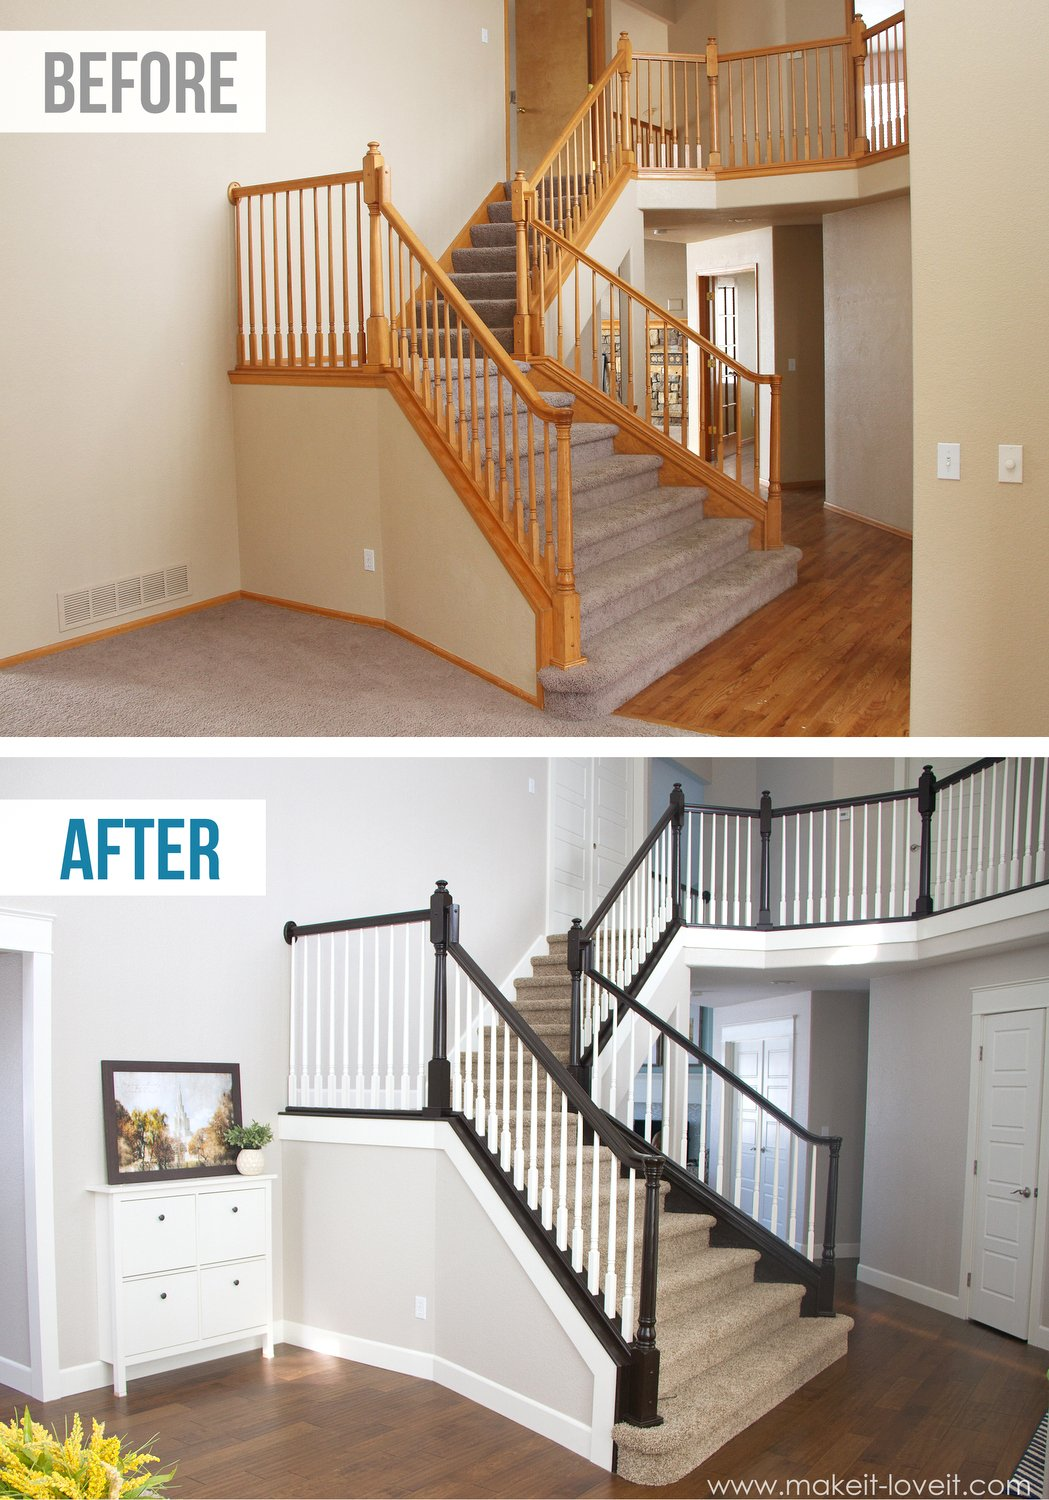 How To StainPaint An Oak Banister the Shortcut Method